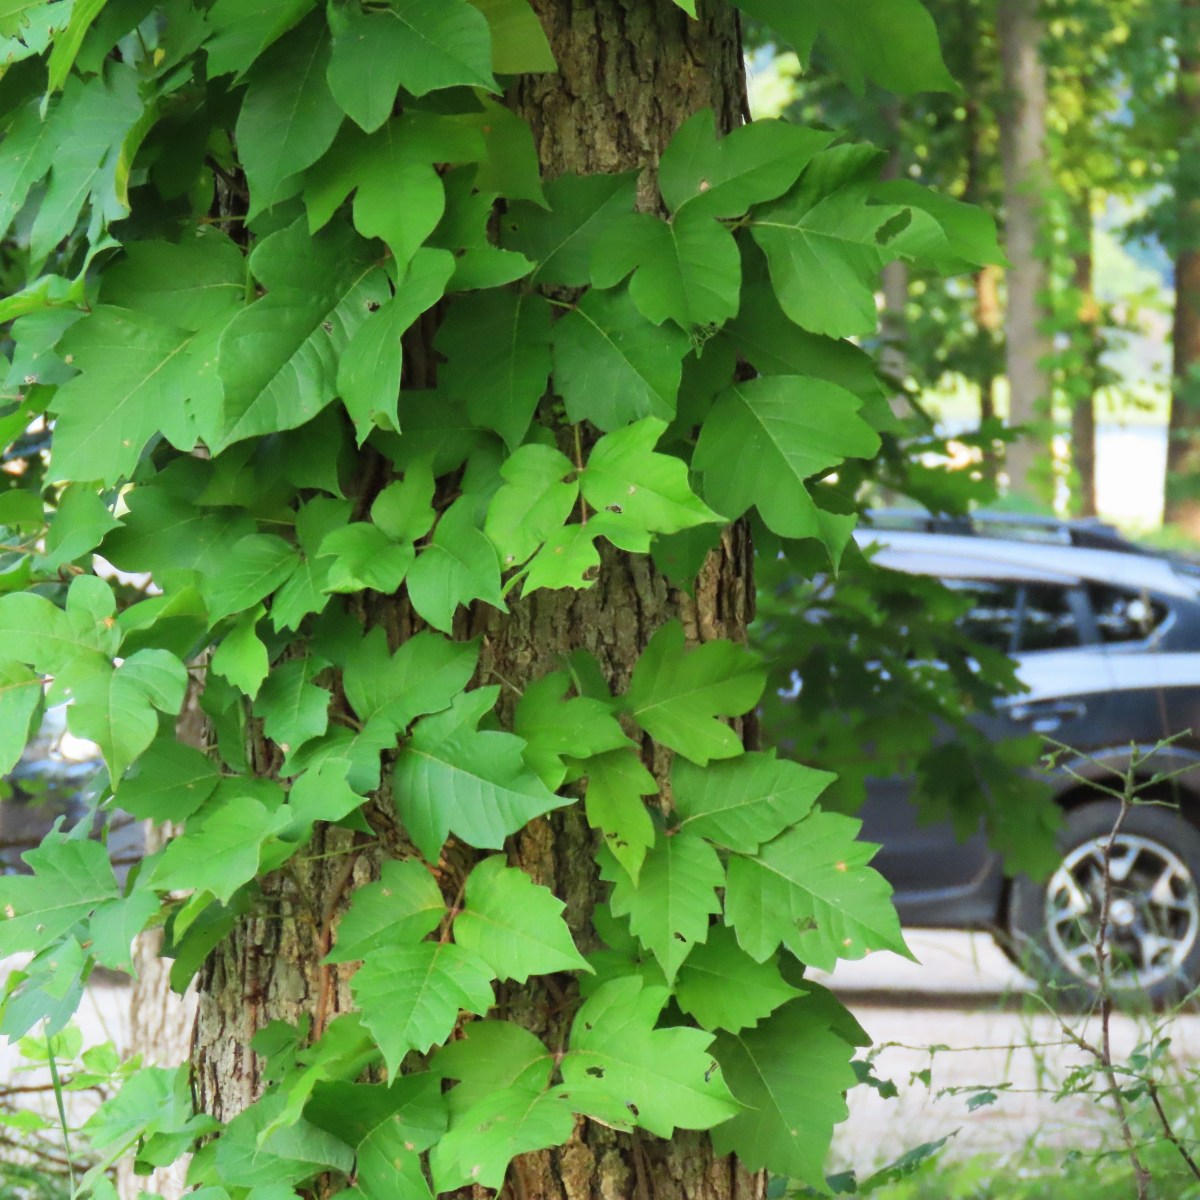 Poison ivy climbing up a tree in a parking lot